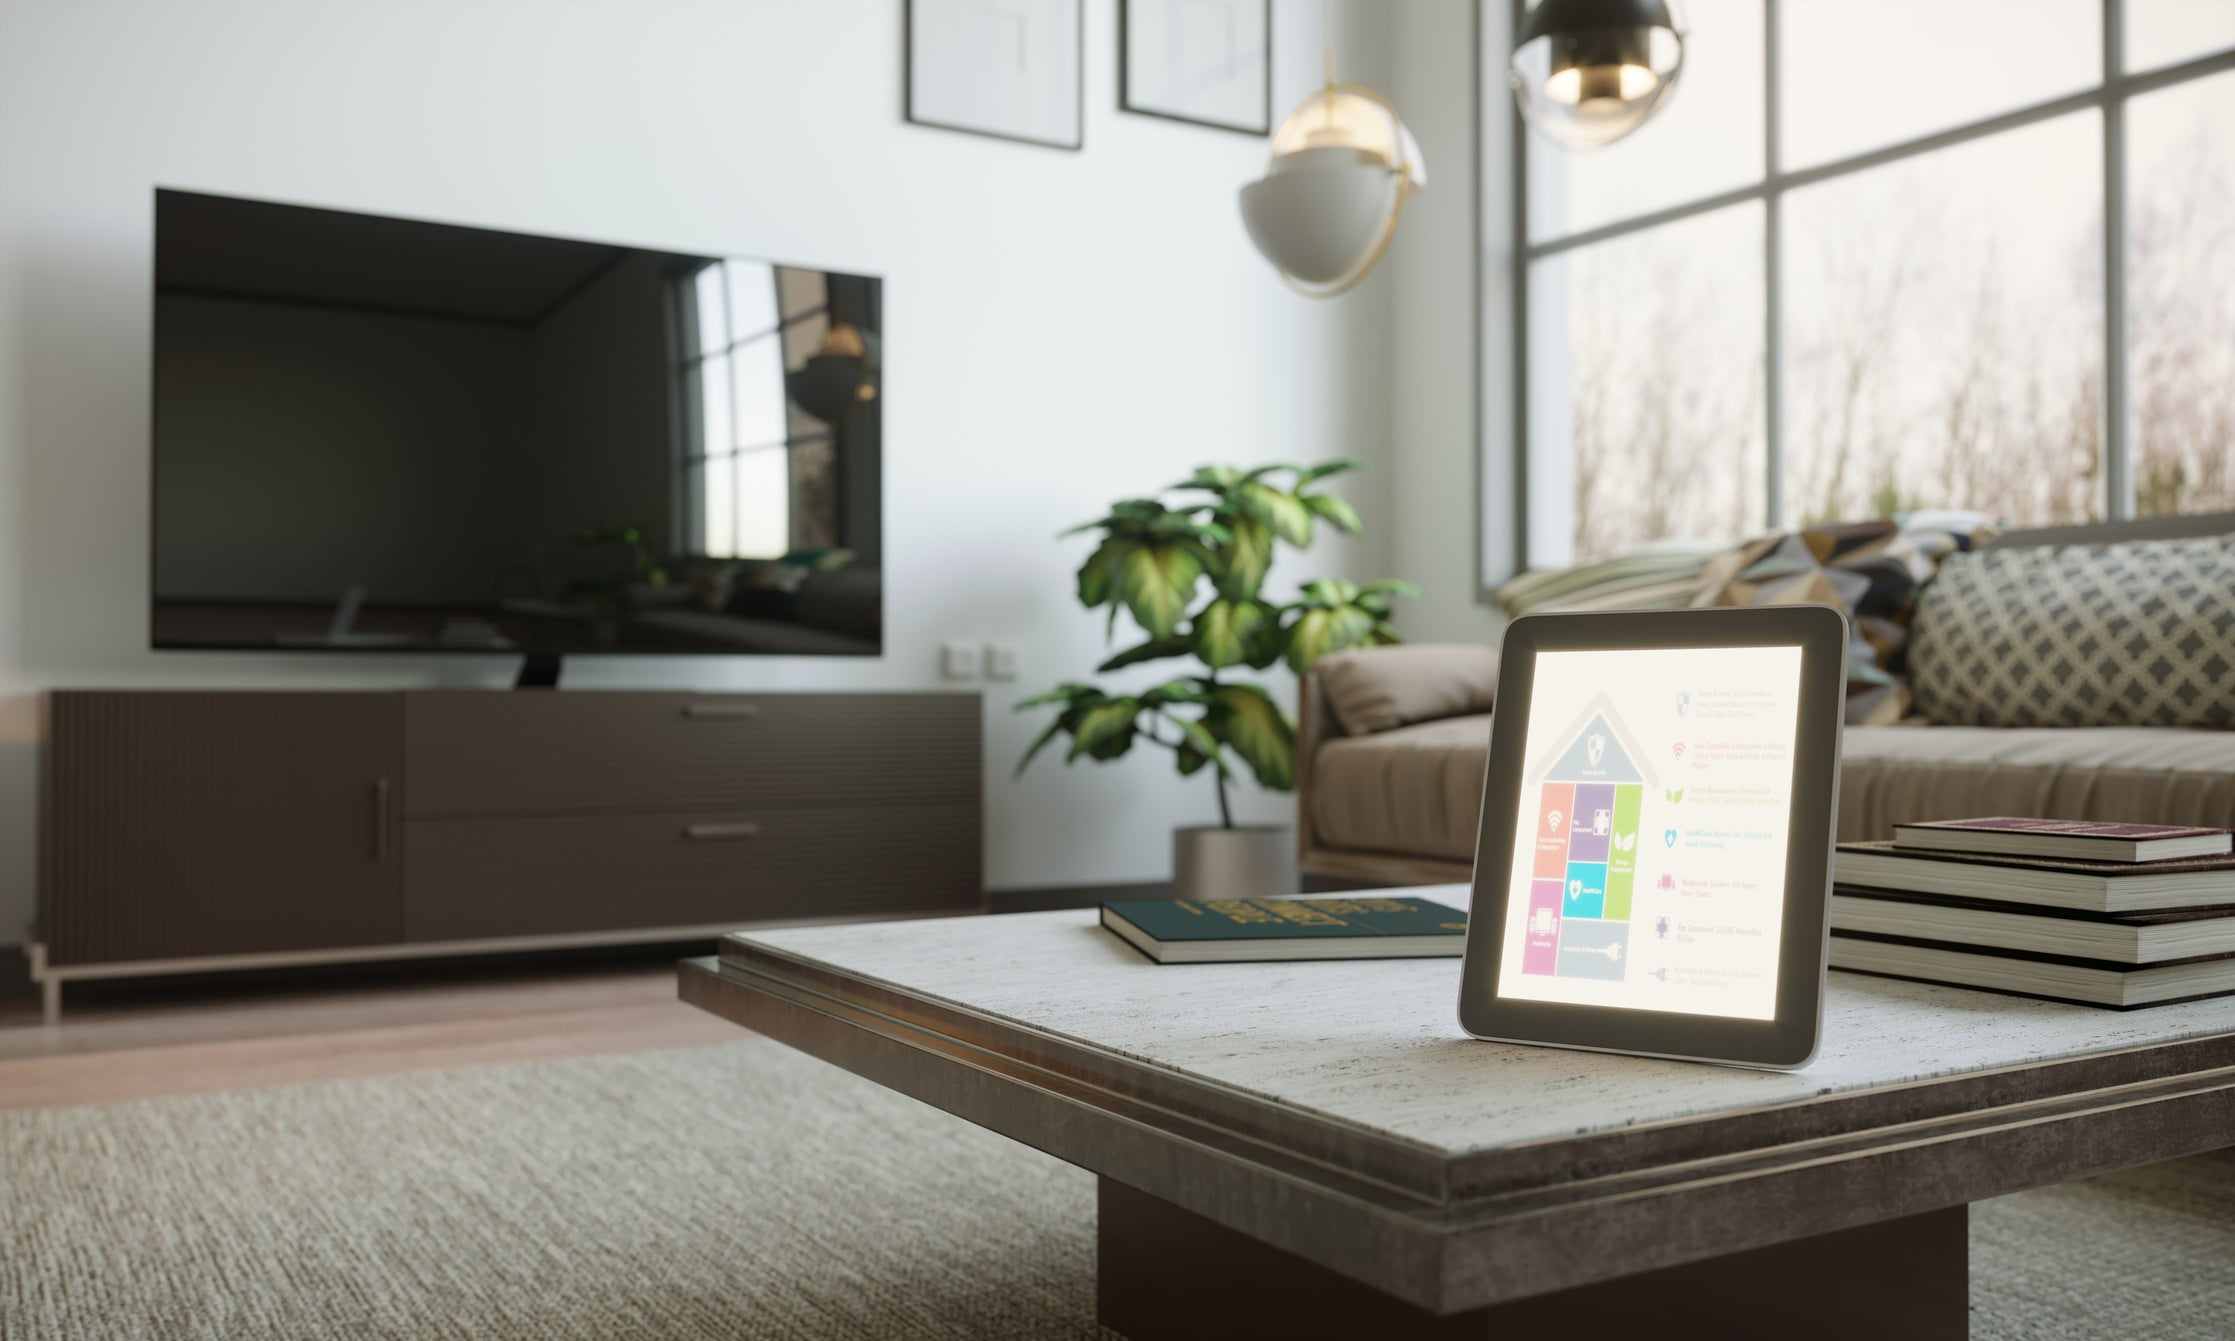 Smart tablet sitting on table